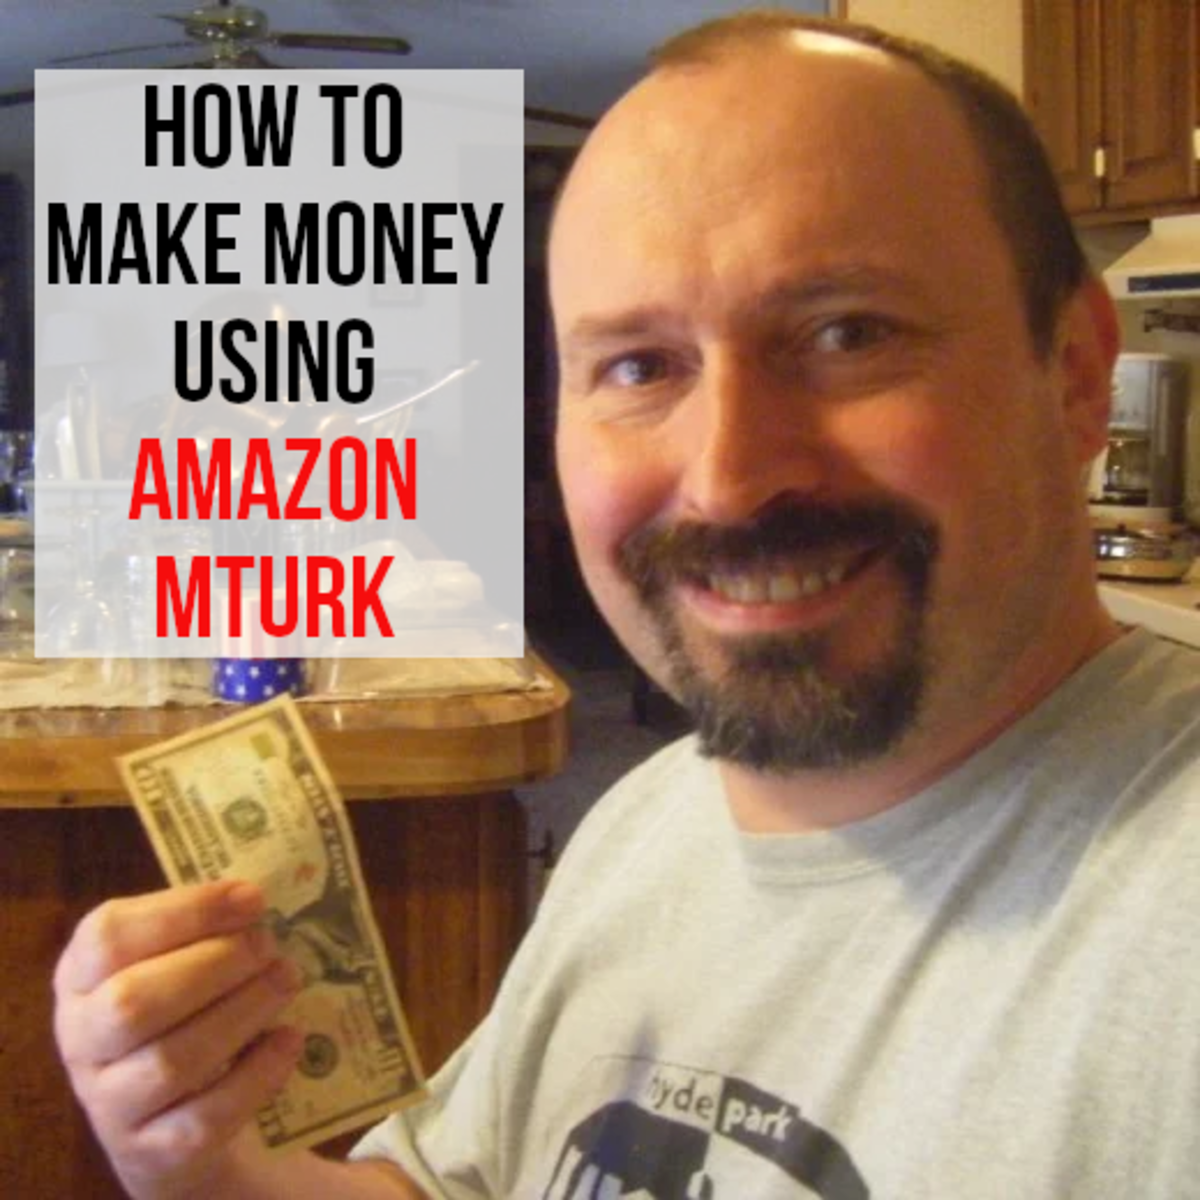 Read on for my Amazon MTurk tips and tricks.